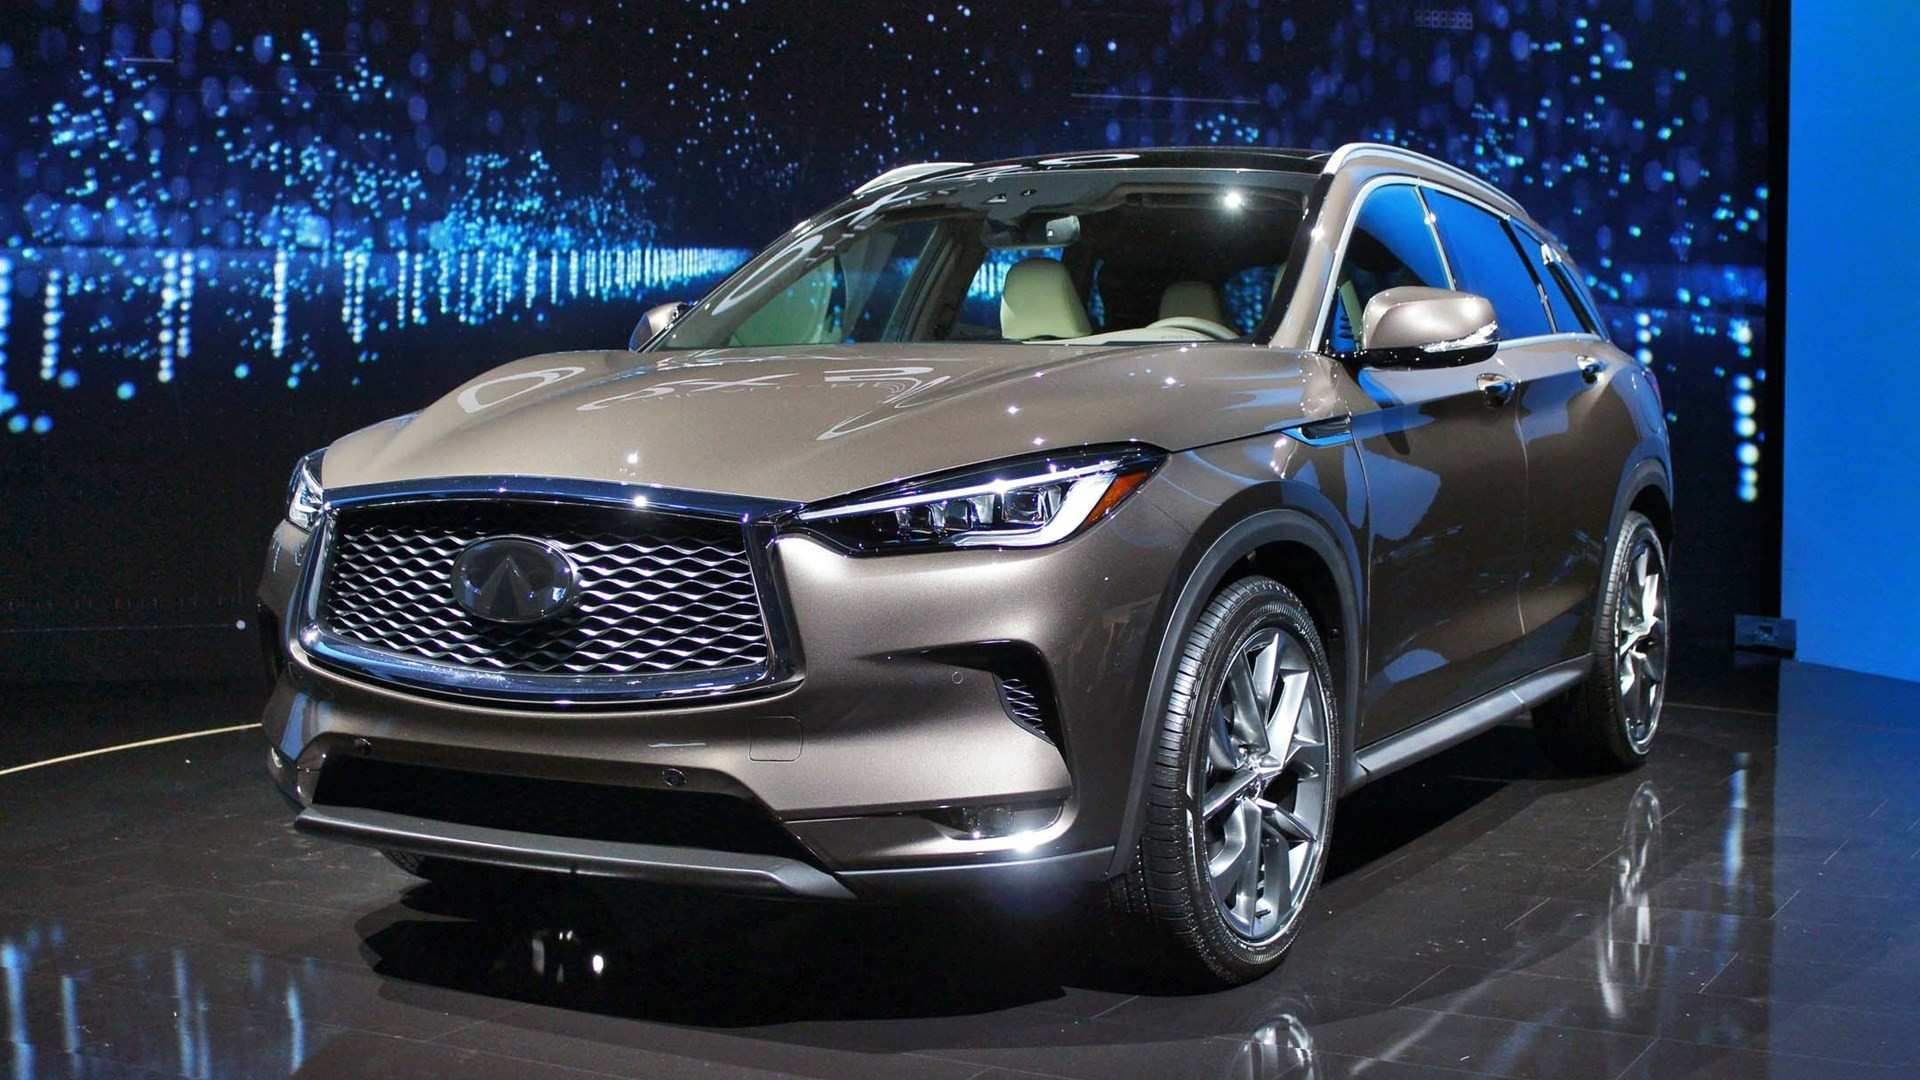 68 A Infiniti Fx35 2020 Images